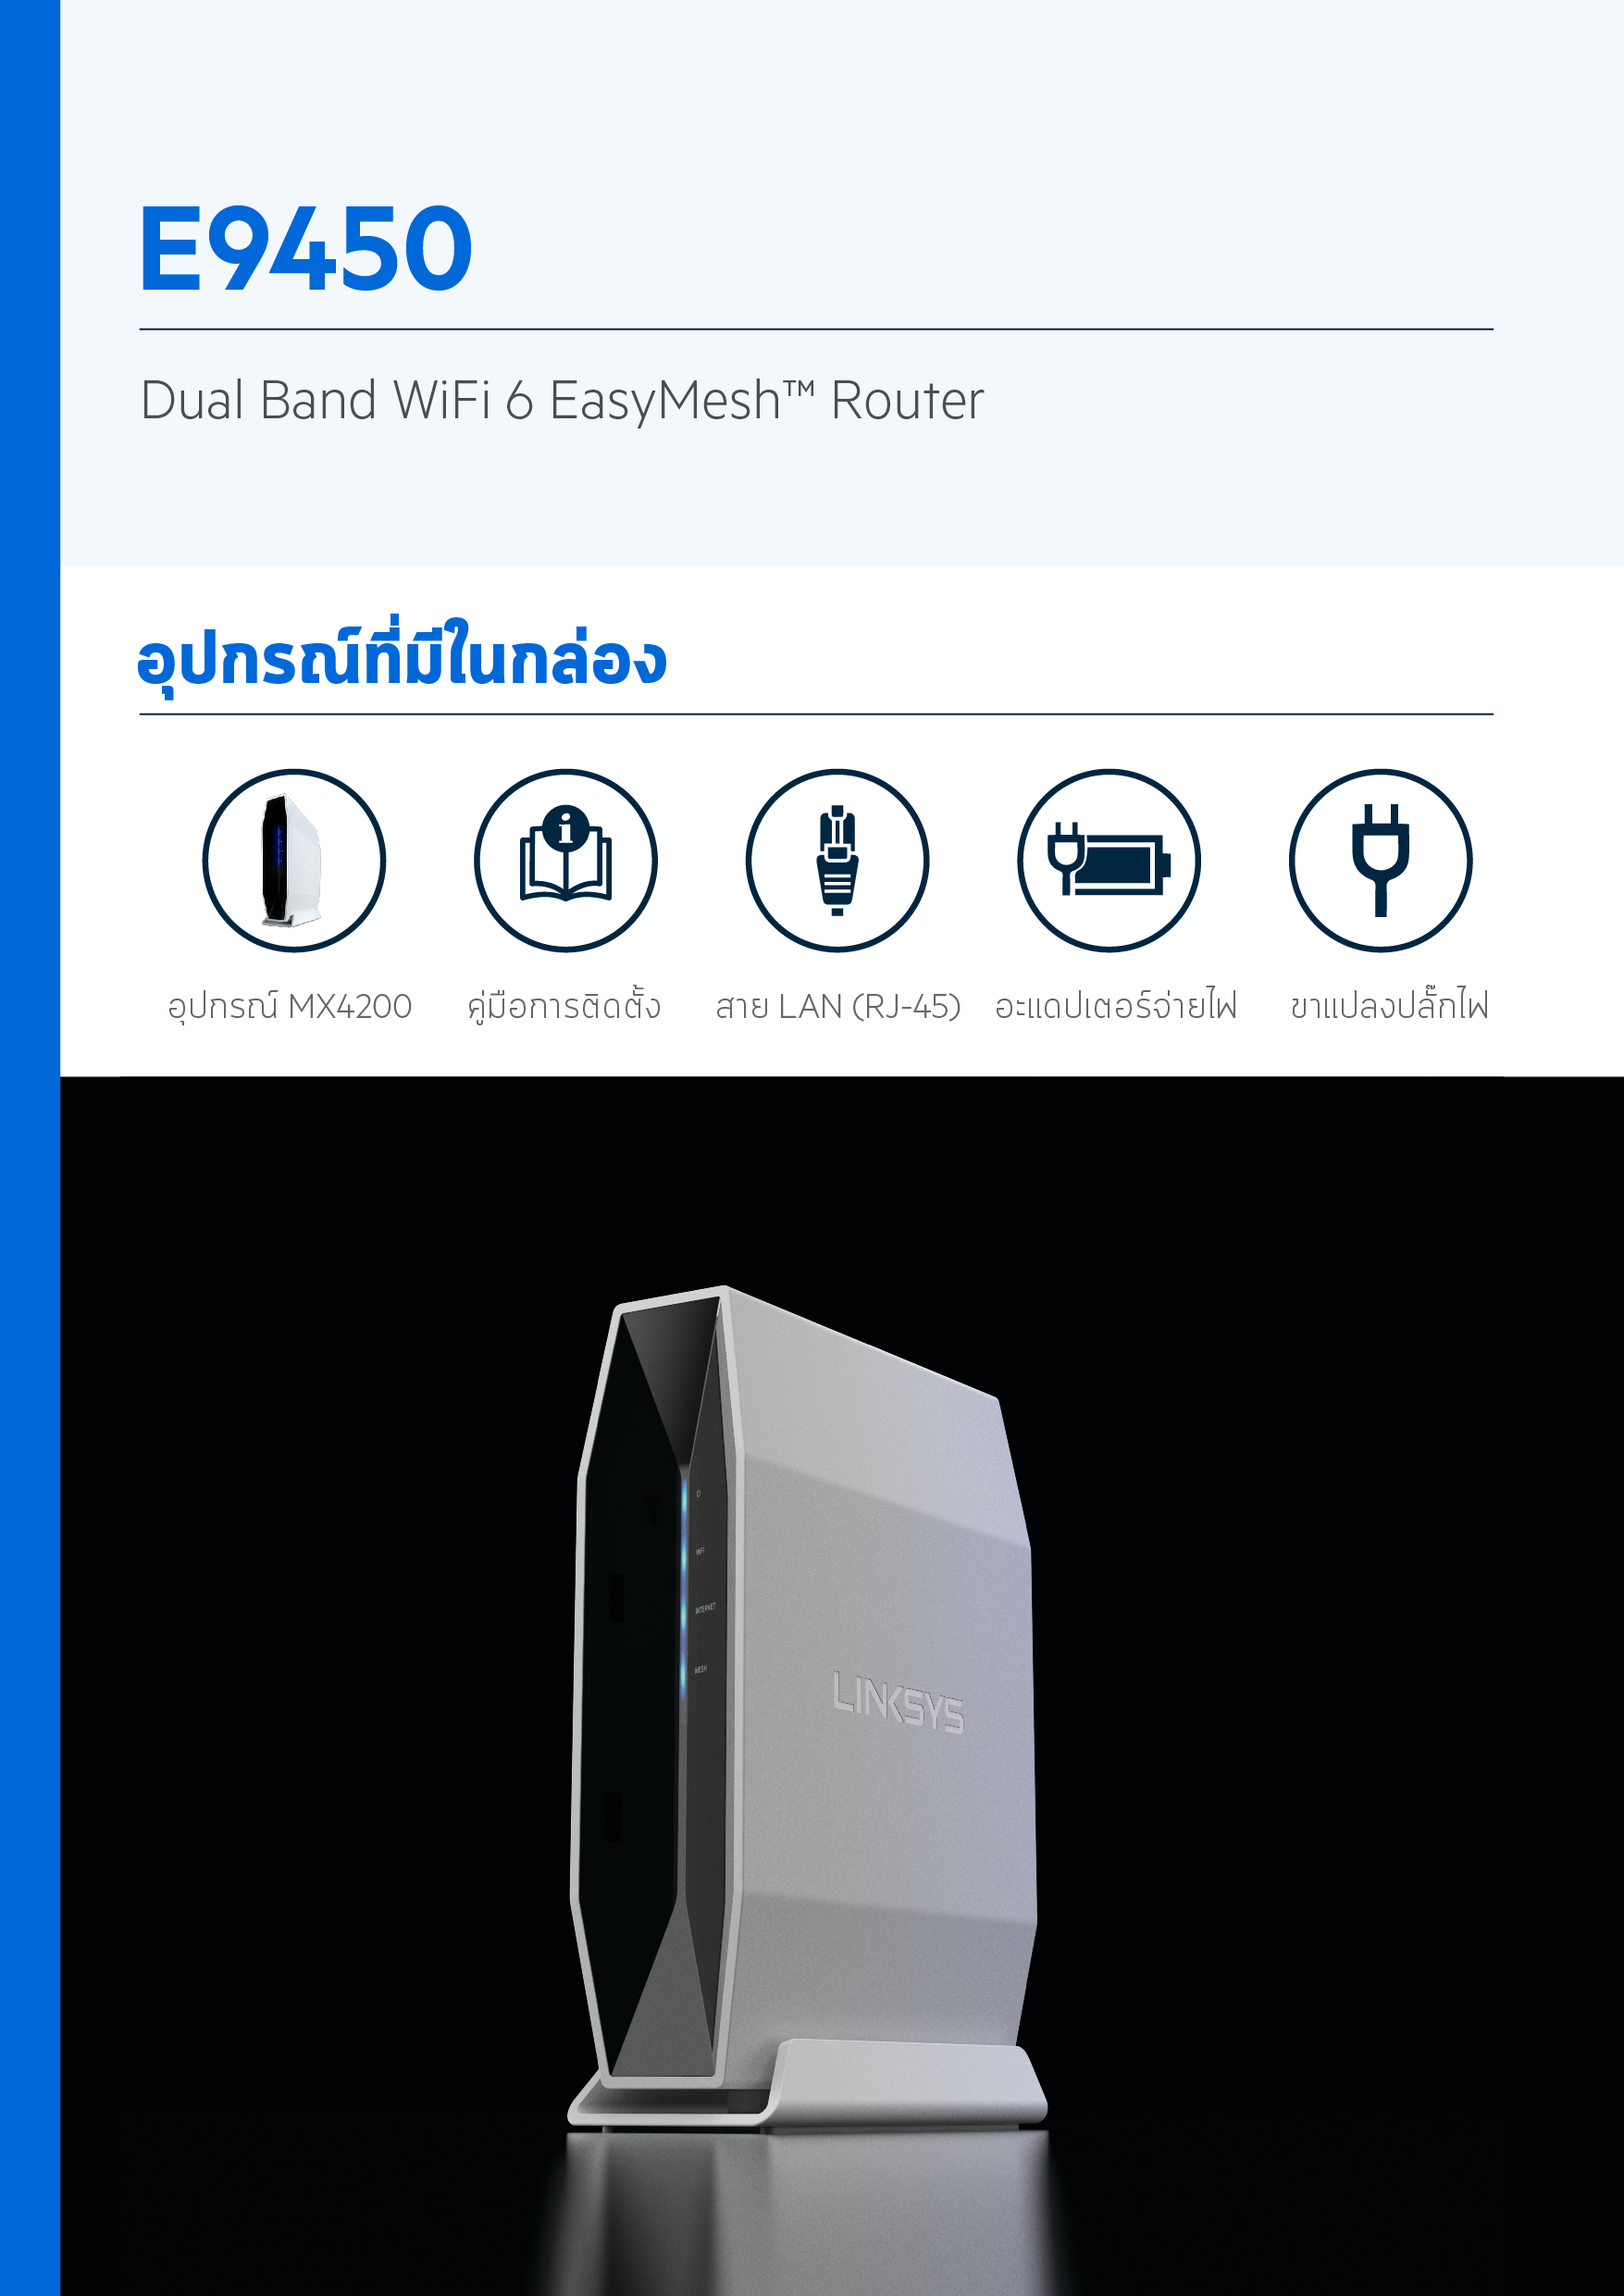 Linksys Dual-Band AX5400 WiFi 6 Router (E9450) installation